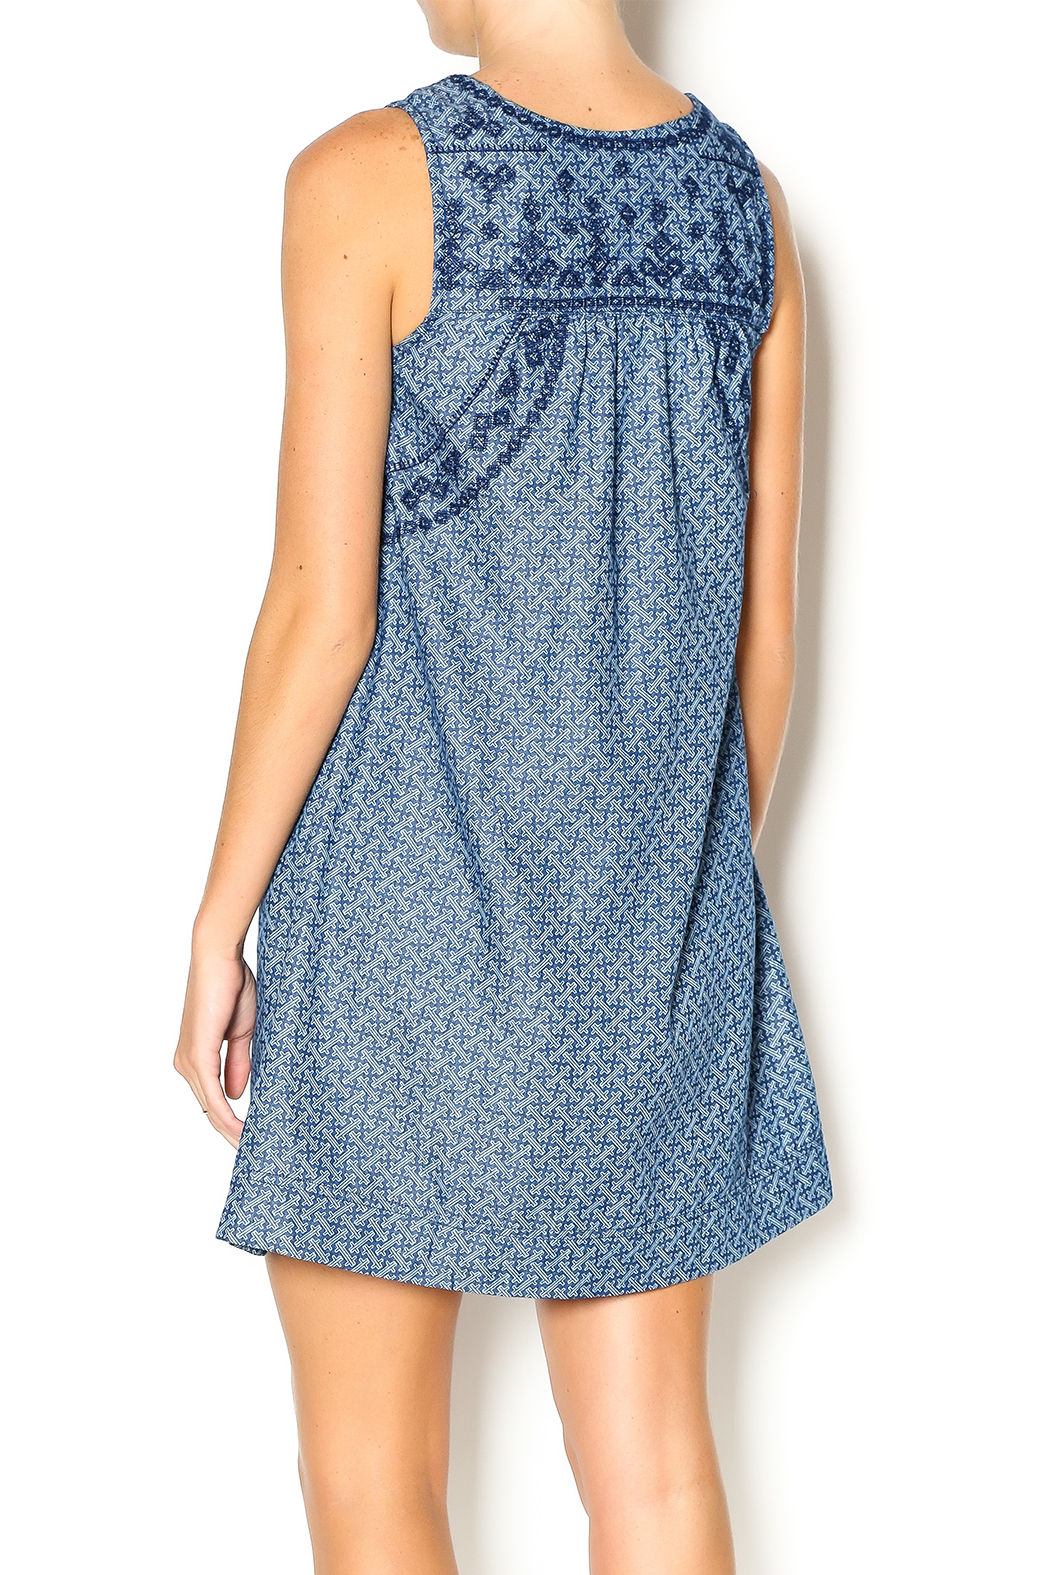 Freeway Apparel Chambray Tunic Dress from Michigan by Sparrow ...